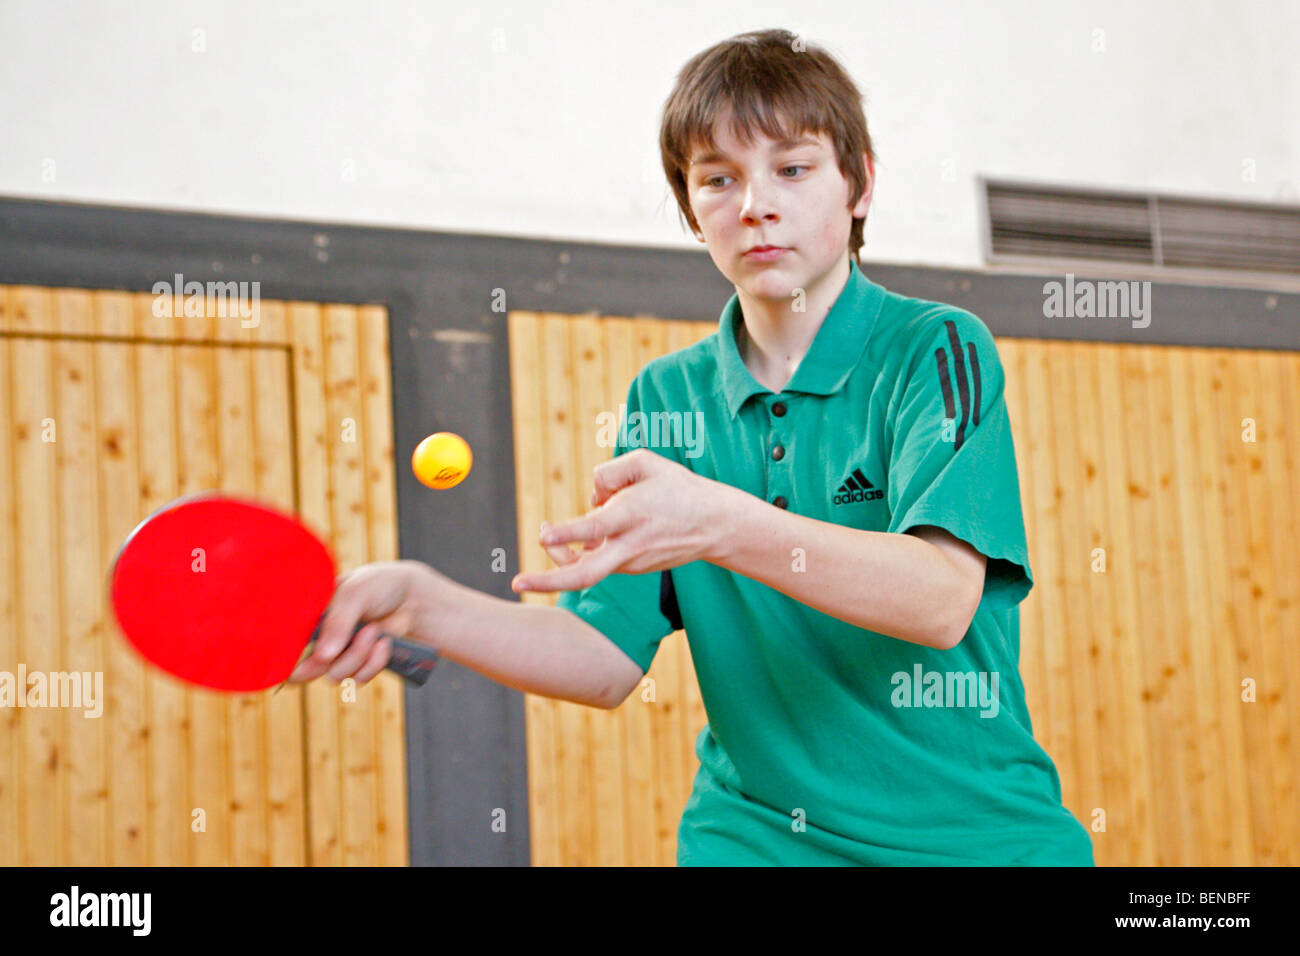 young boy playing table tennis Stock Photo - Alamy